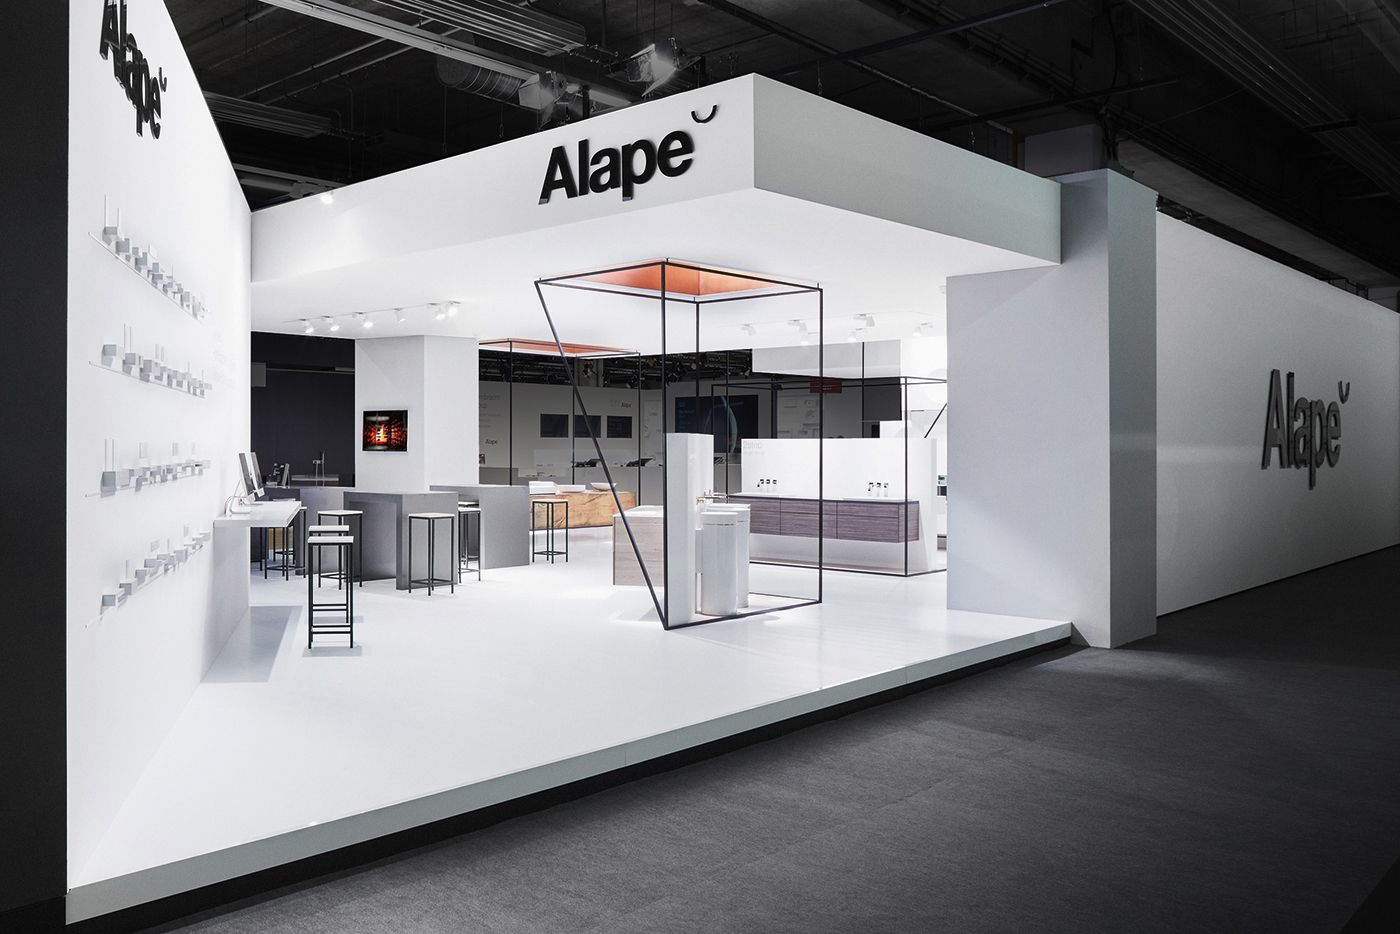 Exhibition Stand Design Process : Alape minimal architectural exhibition grids and